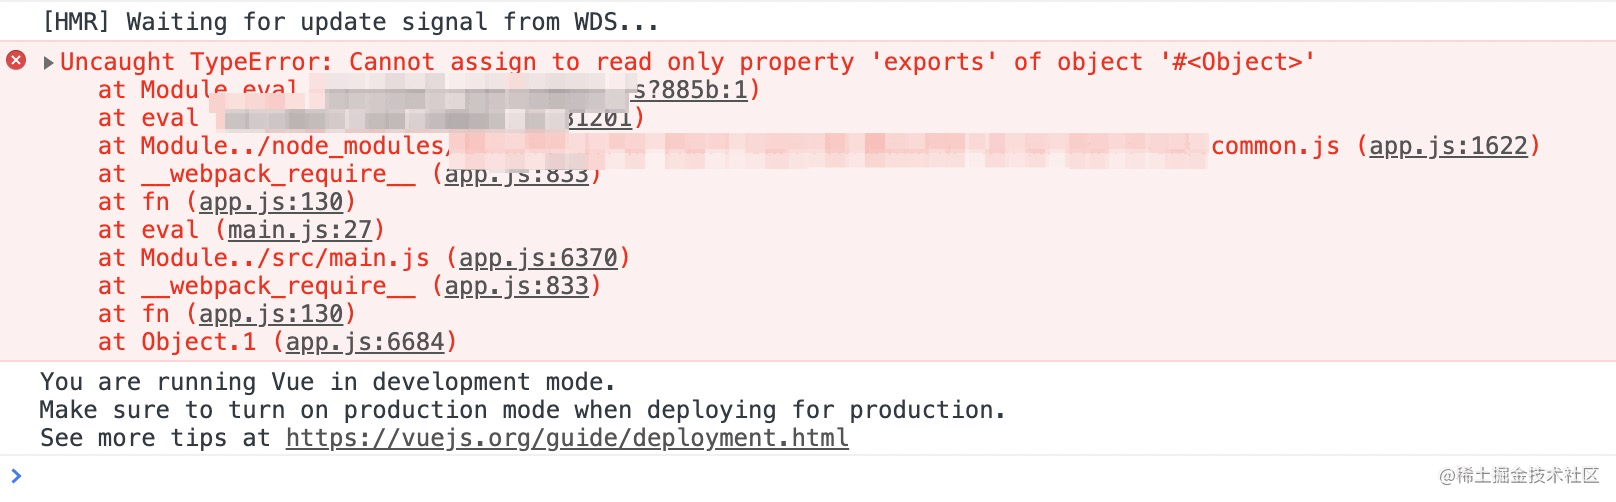 Uncaught TypeError: Cannot assign to read only property ...